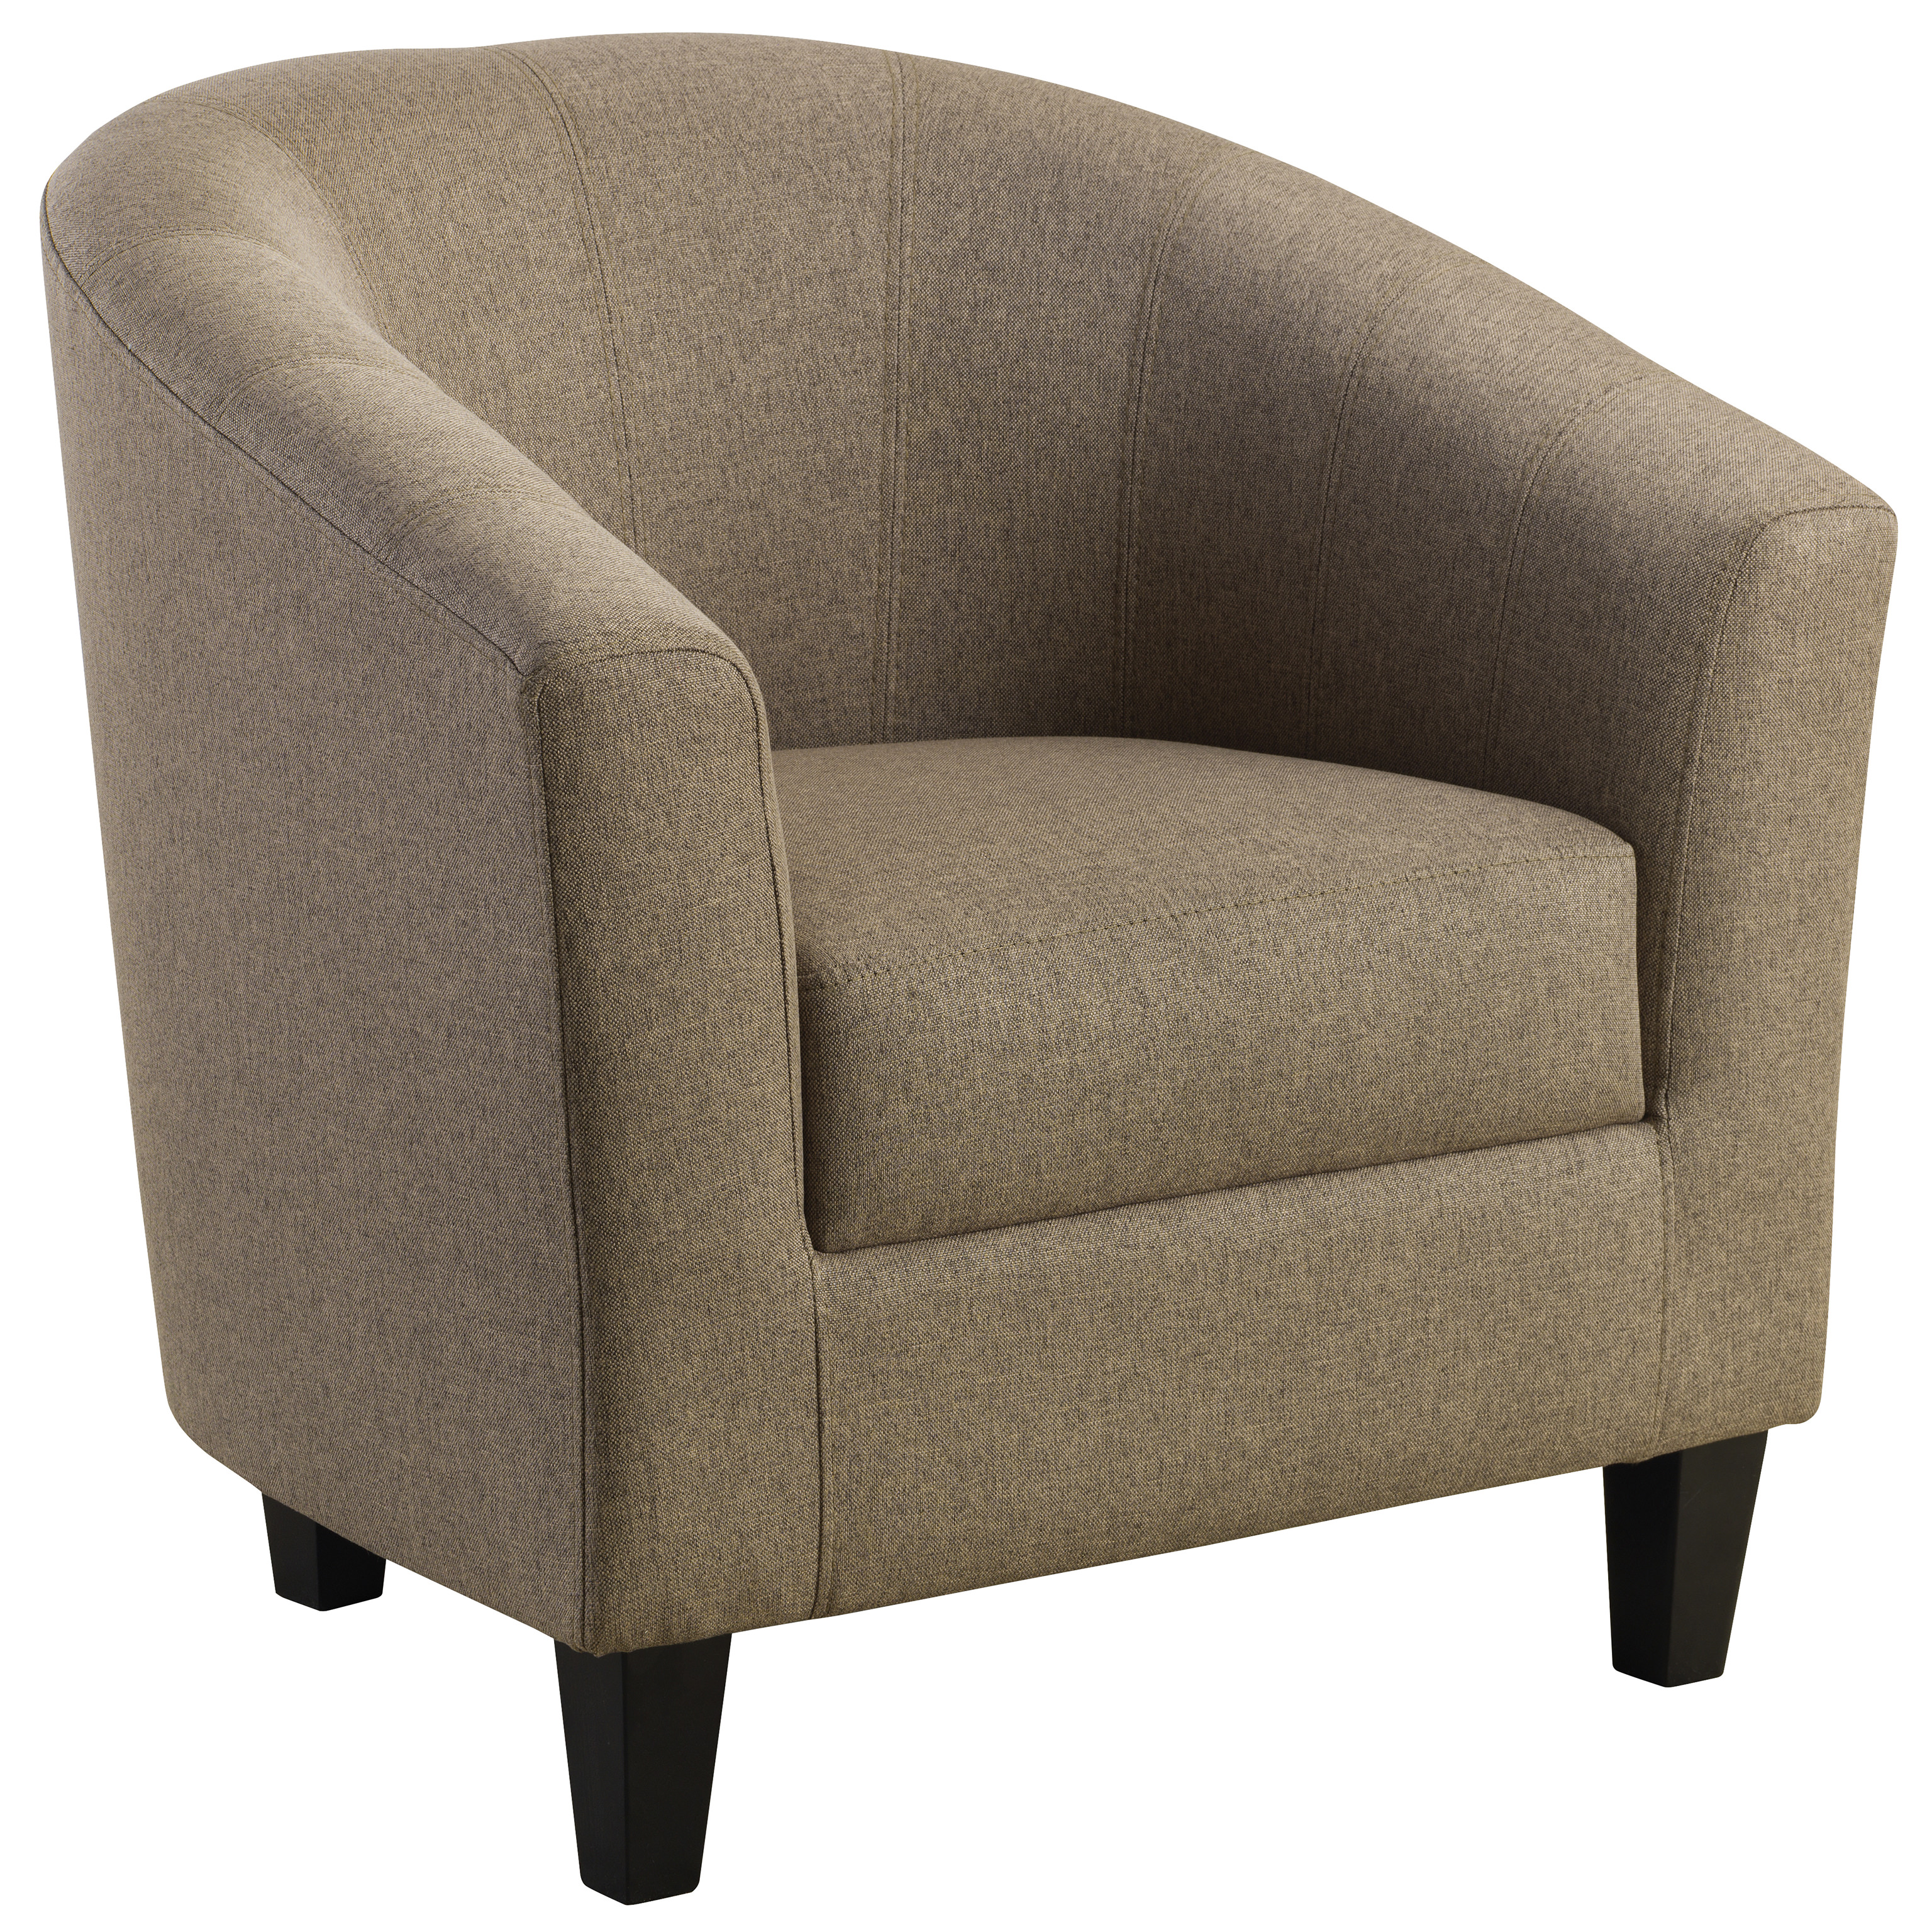 Description: Mushroom Linen Fabric Tub Chair With A Foam Seat Base,  Mushroom Linen Style Fabric Upholstery And Dark Wooden Feet. This One  Seater Armchair ...